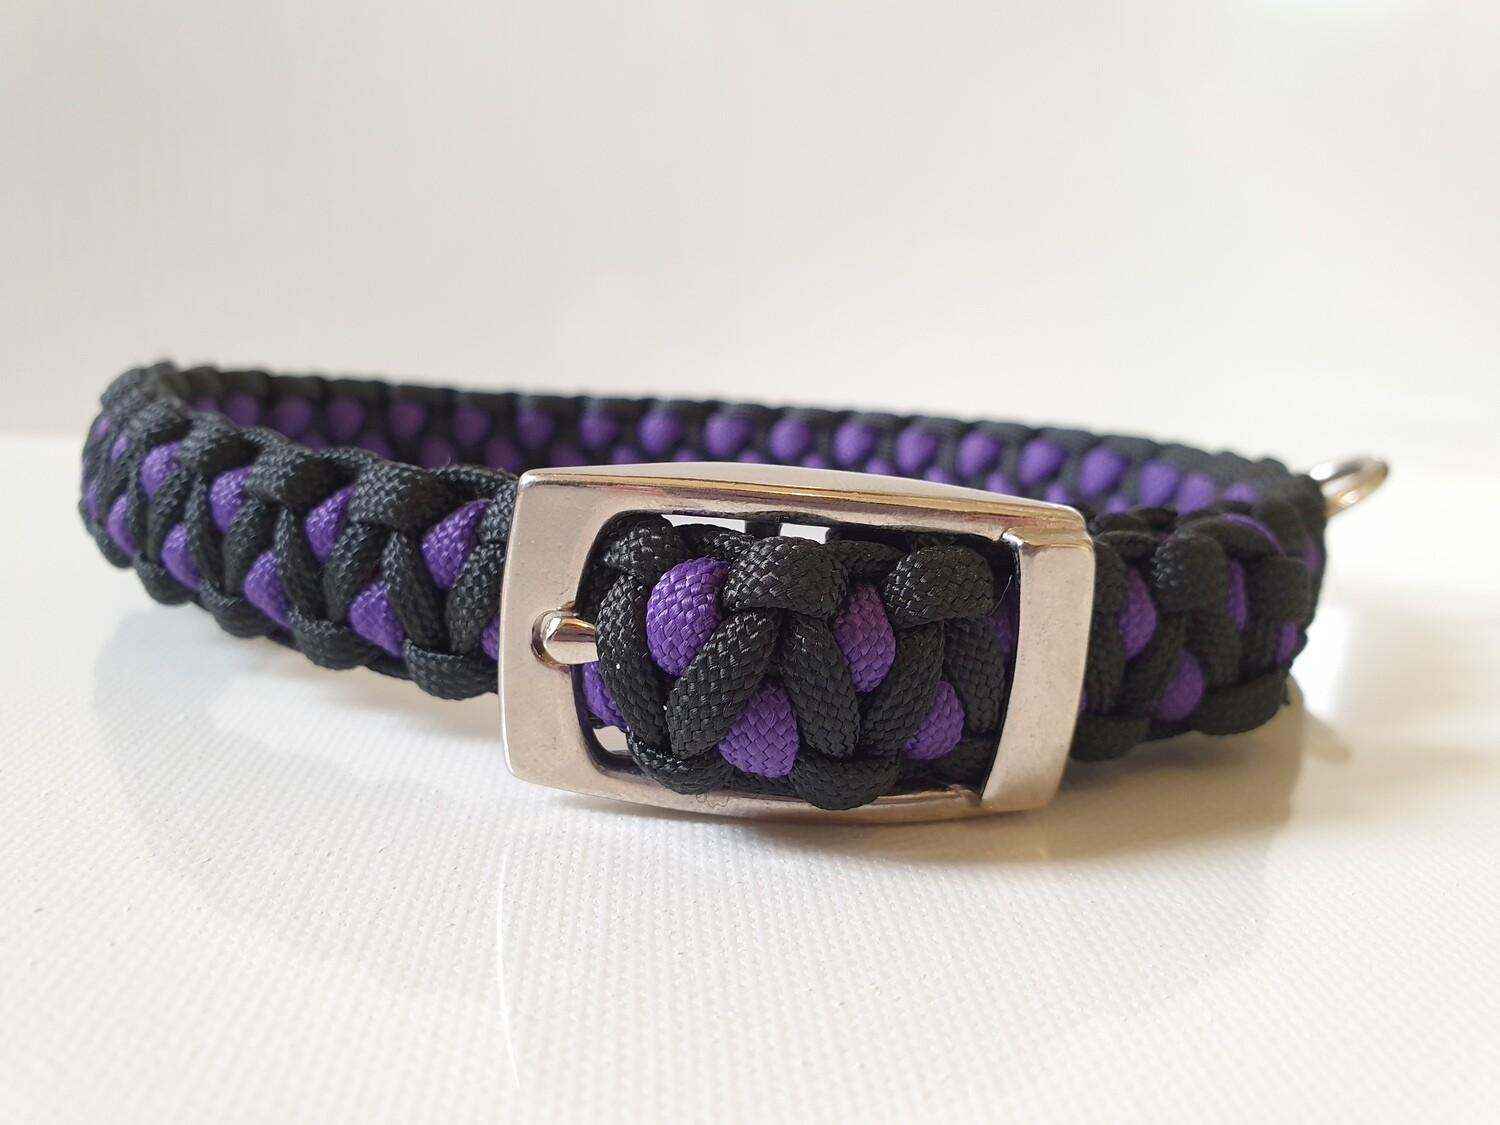 Drakon Medium Purple/Black Dog Collar